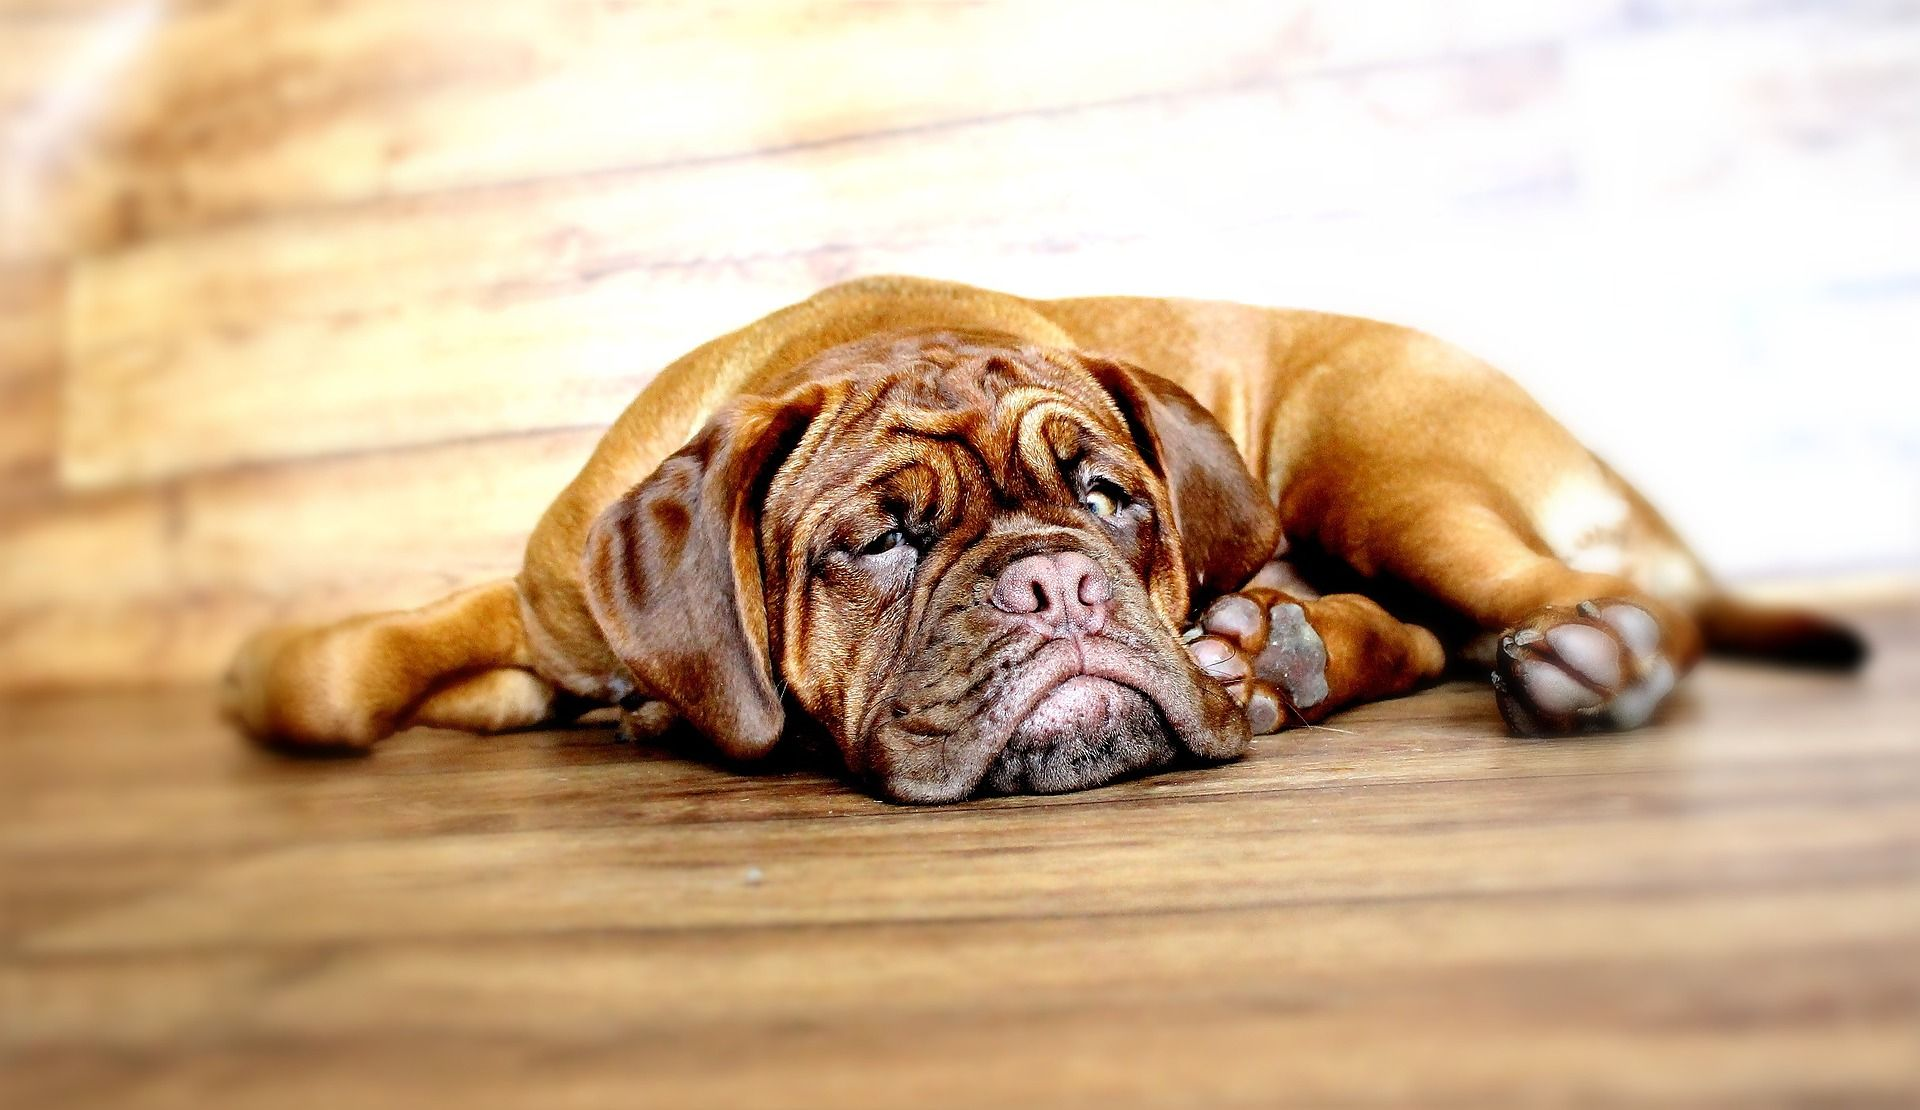 Why so lazy, Access?